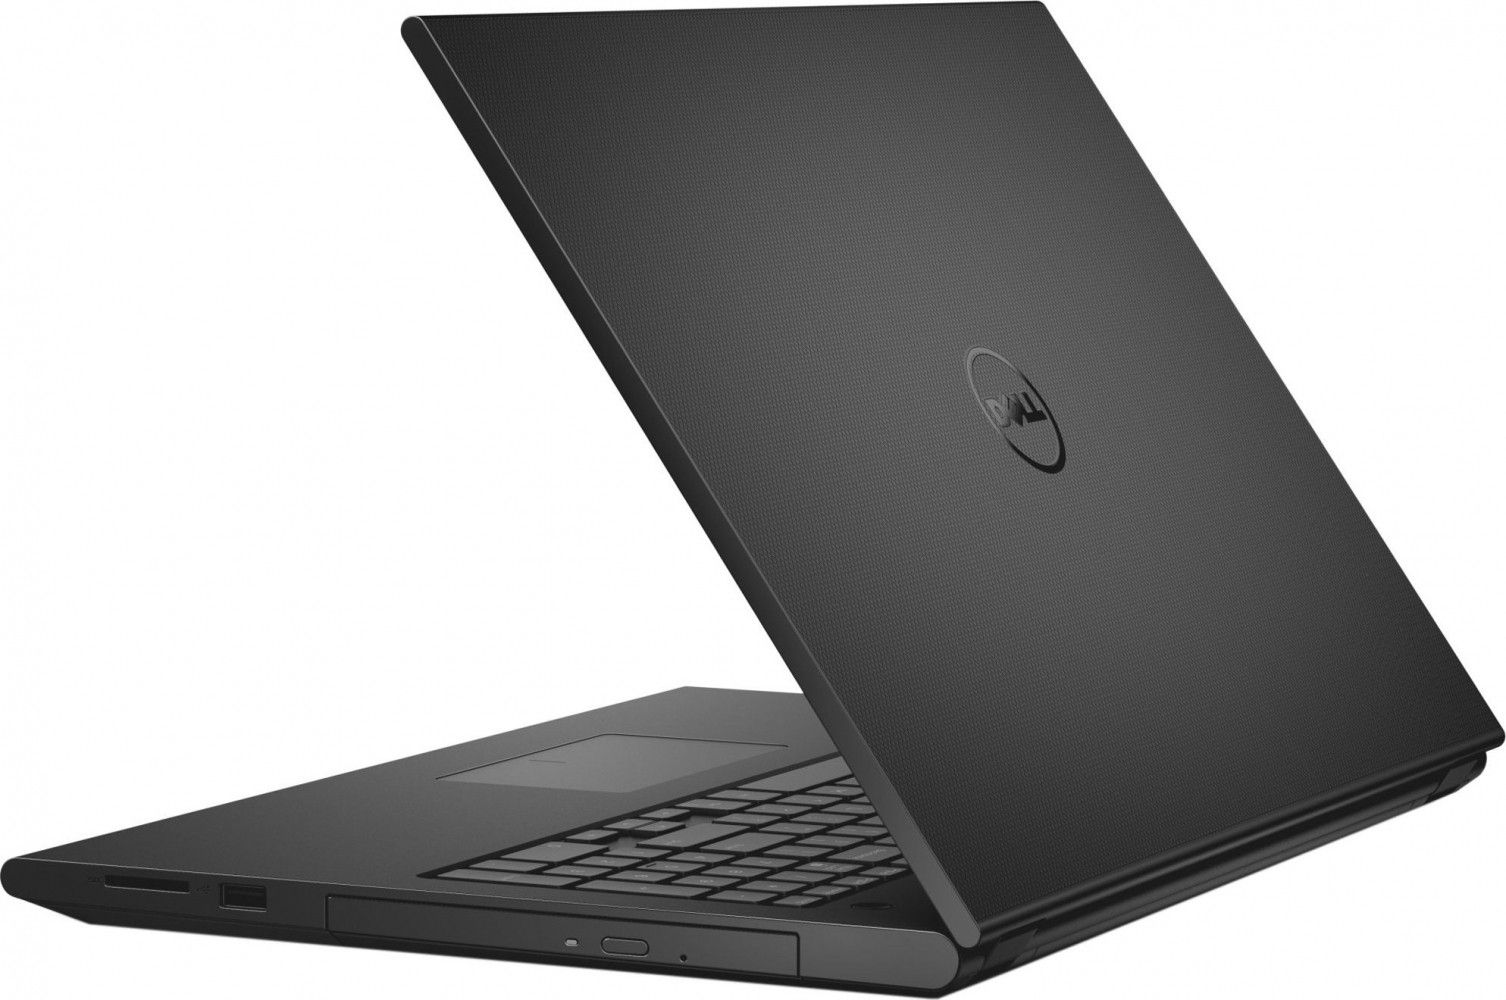 Ноутбук Dell Inspiron 3542 (I35345DIL-46) Black - 1